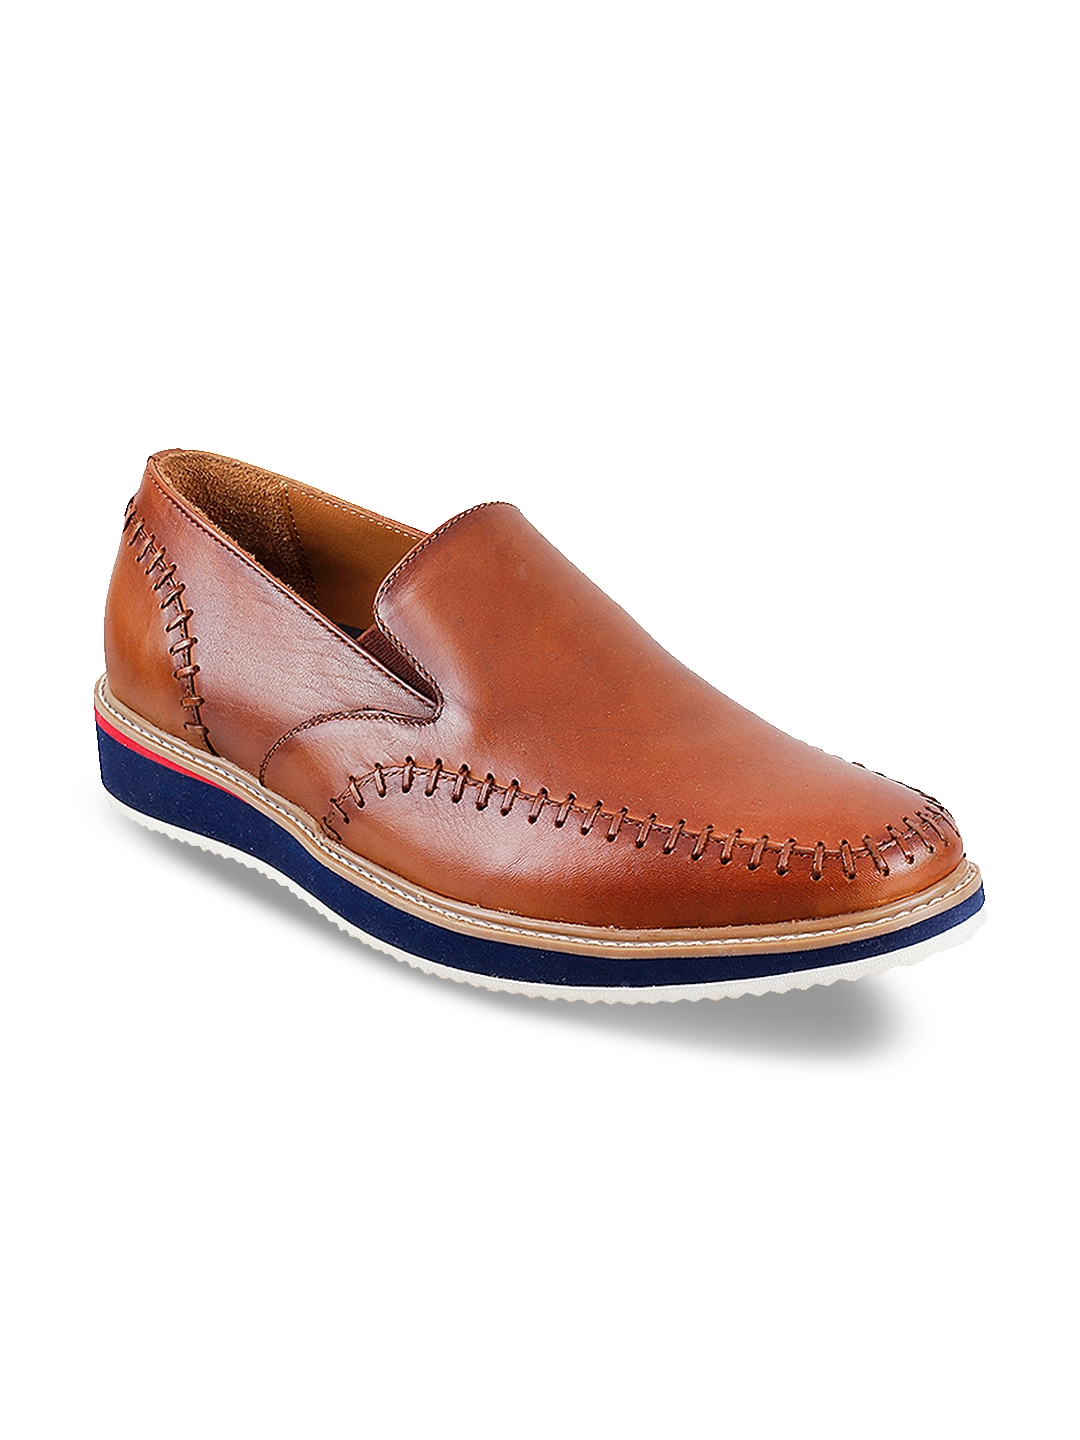 0e5b3774b2914 Buy Metro Men Tan Brown Leather Slip On Sneakers - Casual Shoes for ...